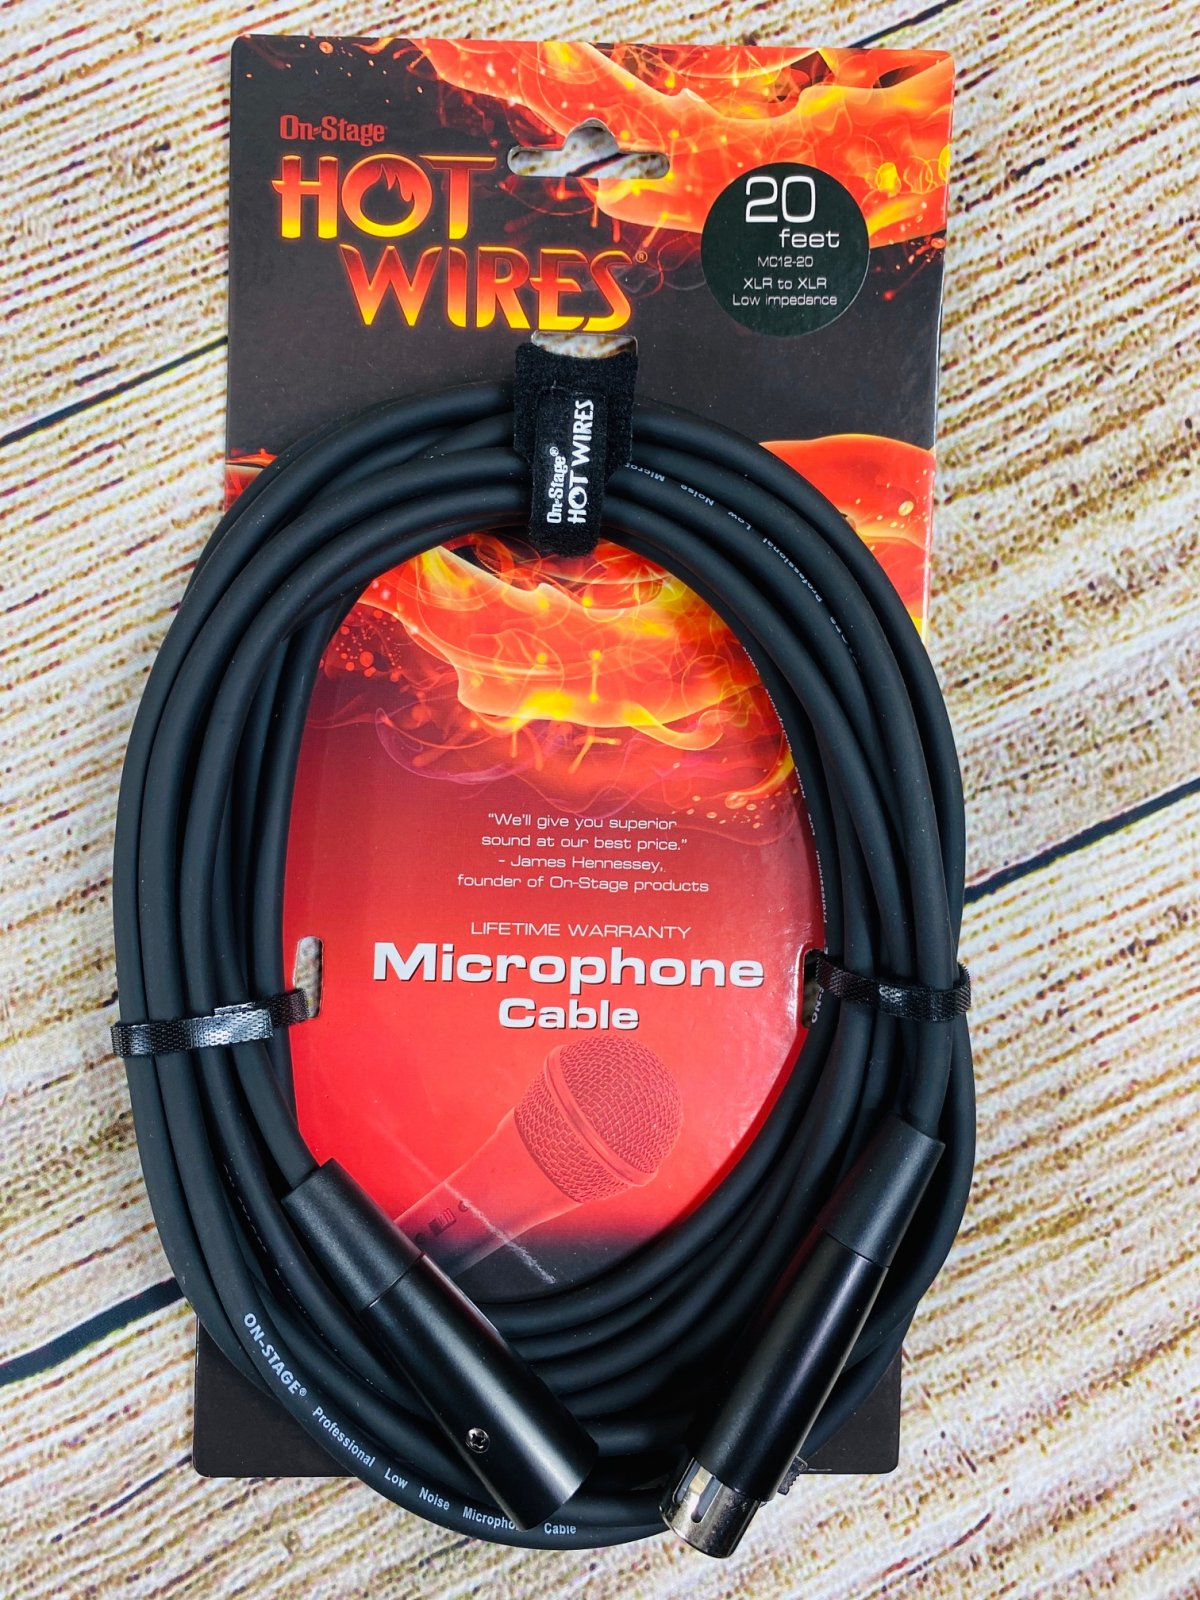 On-Stage Hot Wires XLR Microphone Cable, 20 Feet